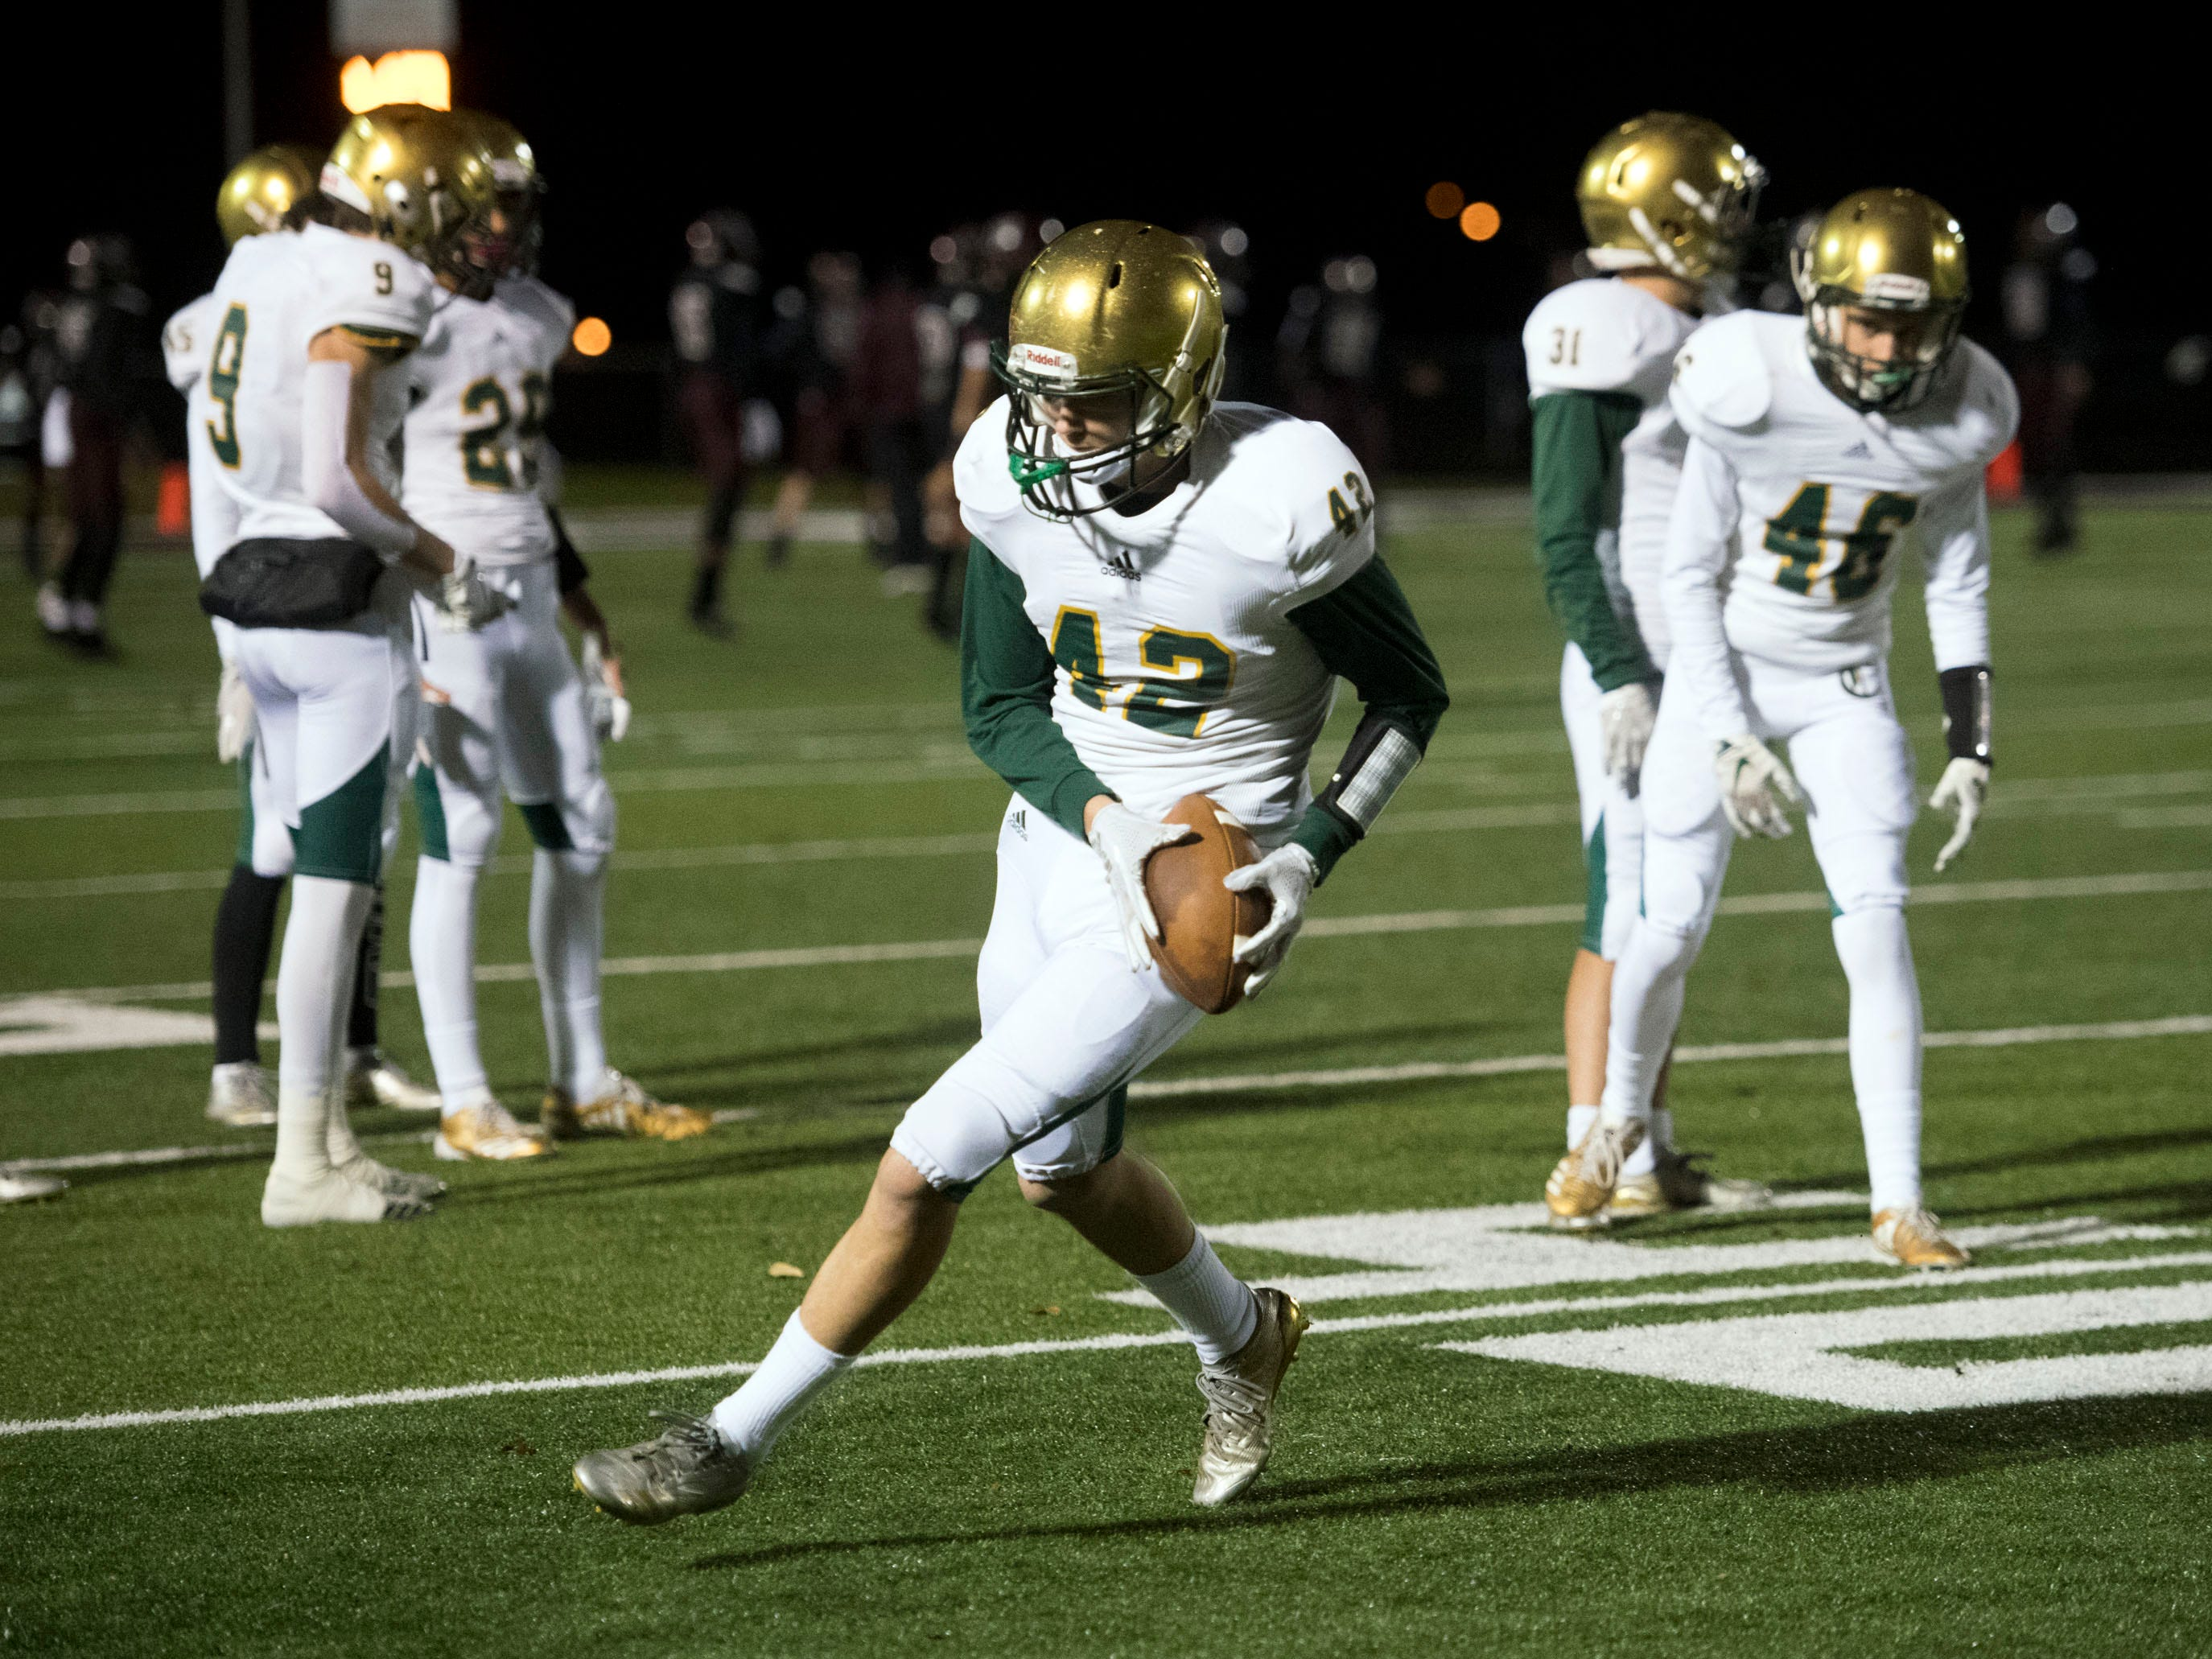 Knoxville Catholic's Seth Lawson (42) warms up before the start of the Class 5A second round playoff game against Fulton on Friday, November 9, 2018.